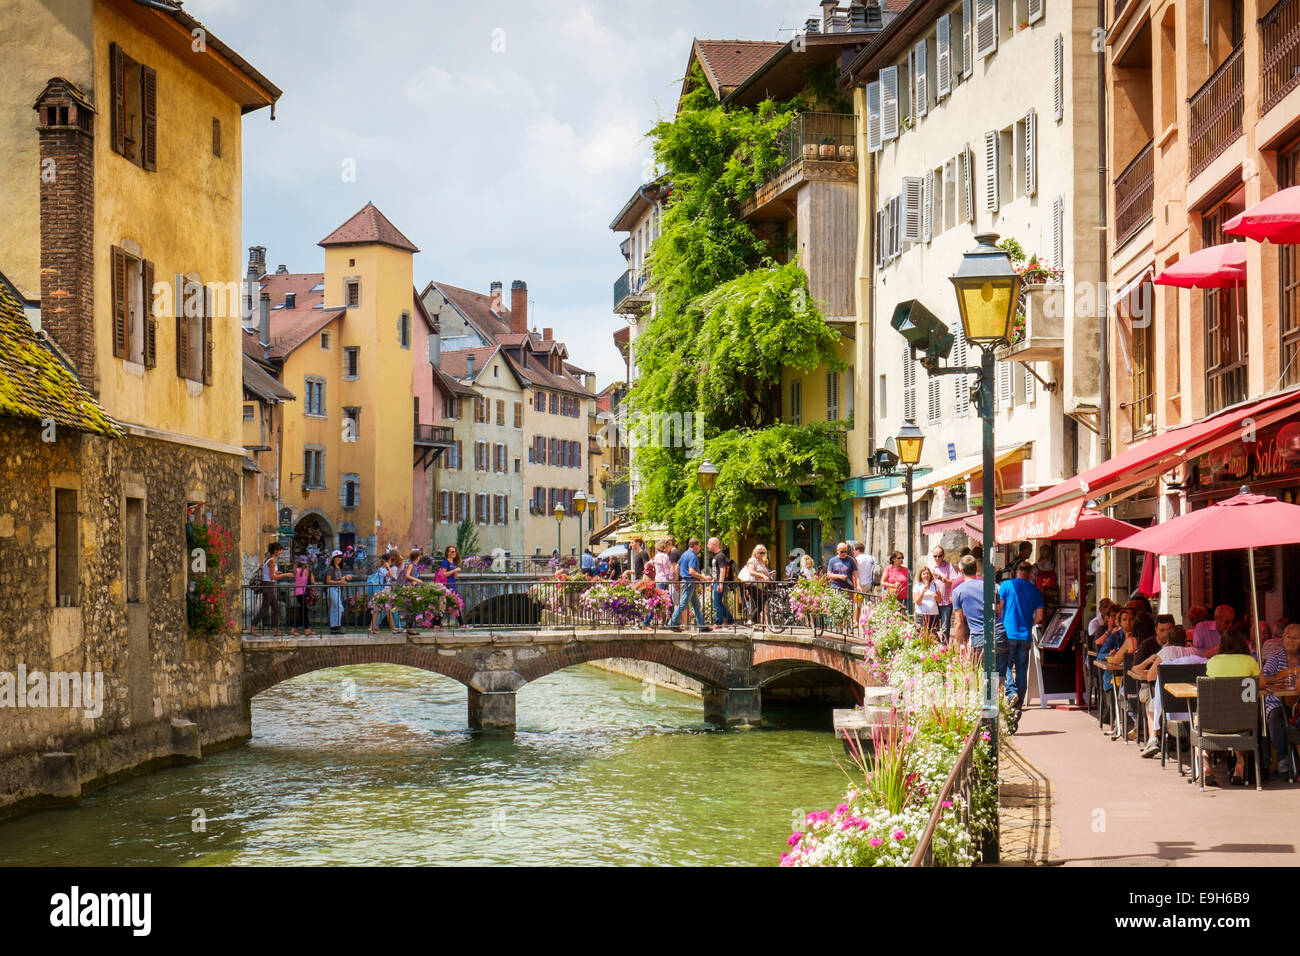 Annecy France With Tourists In The Old Town In Summer Stock Photo